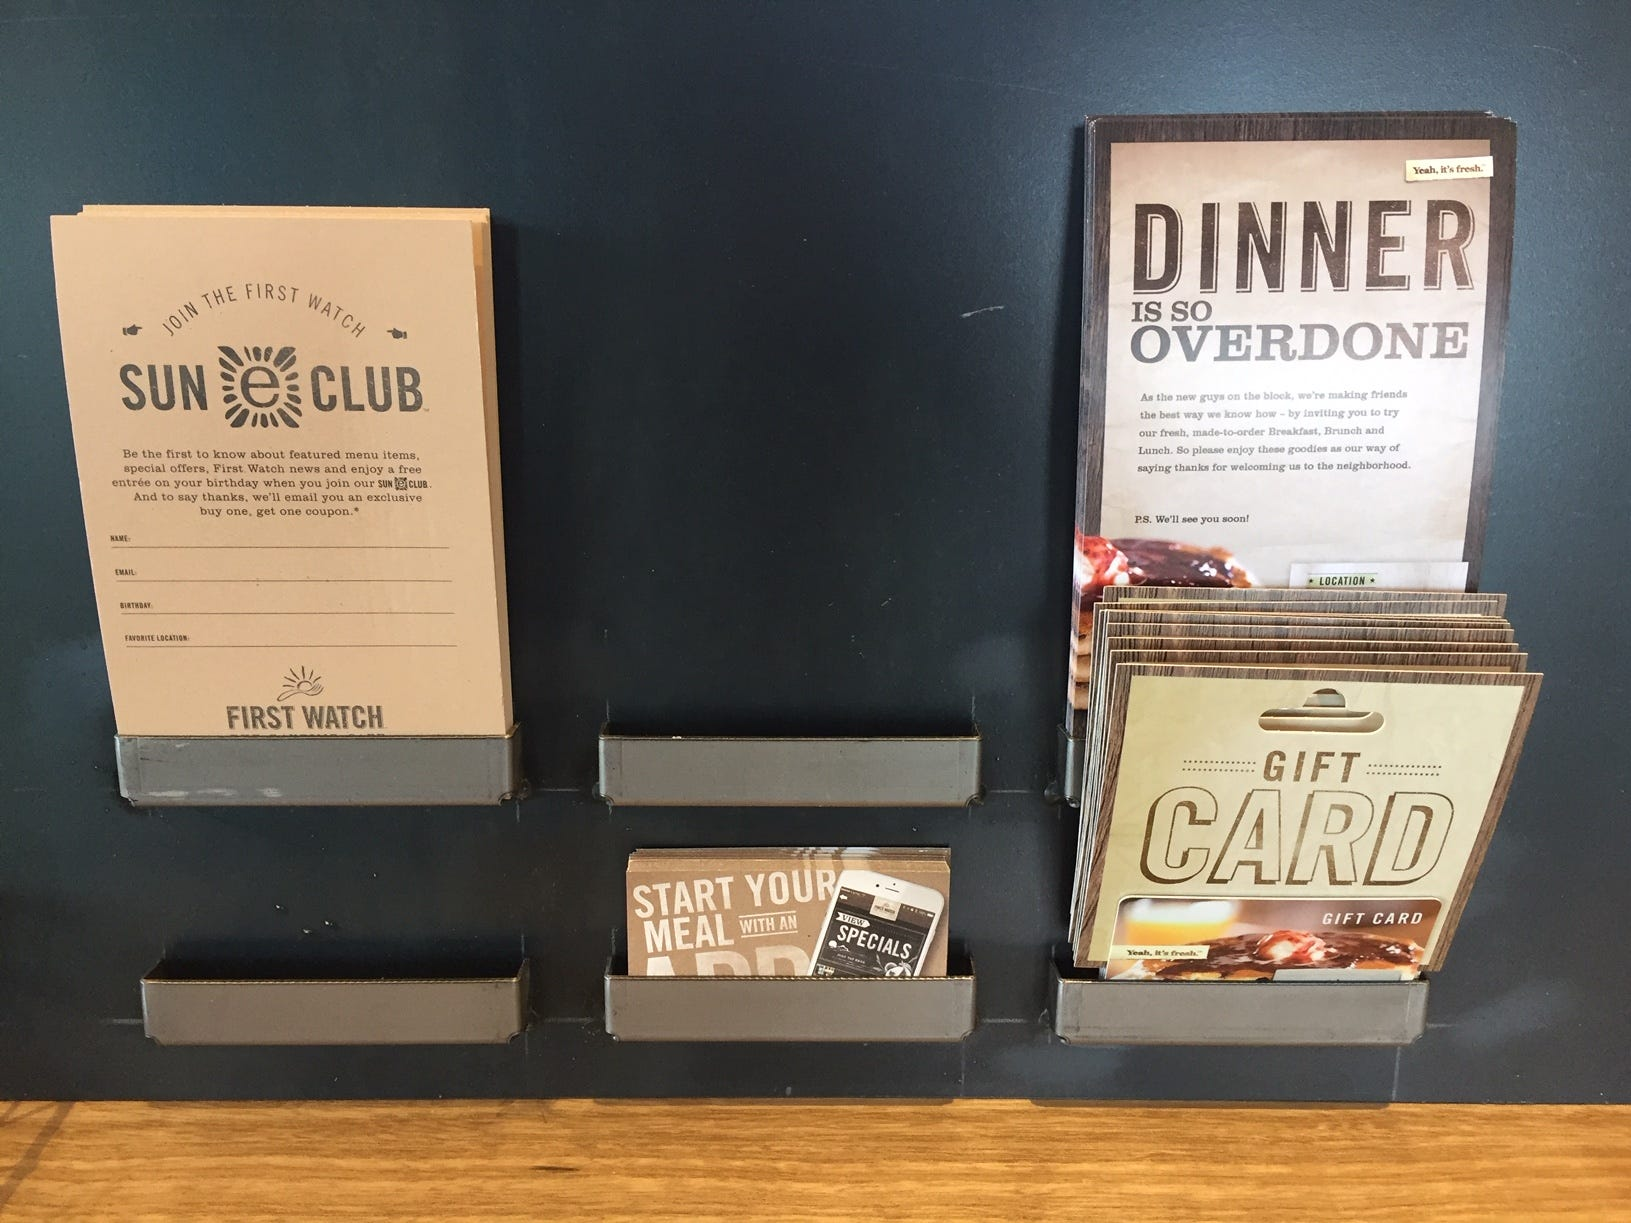 Gift cards and First Watch Sun Club membership club info are offered at the hostess station.